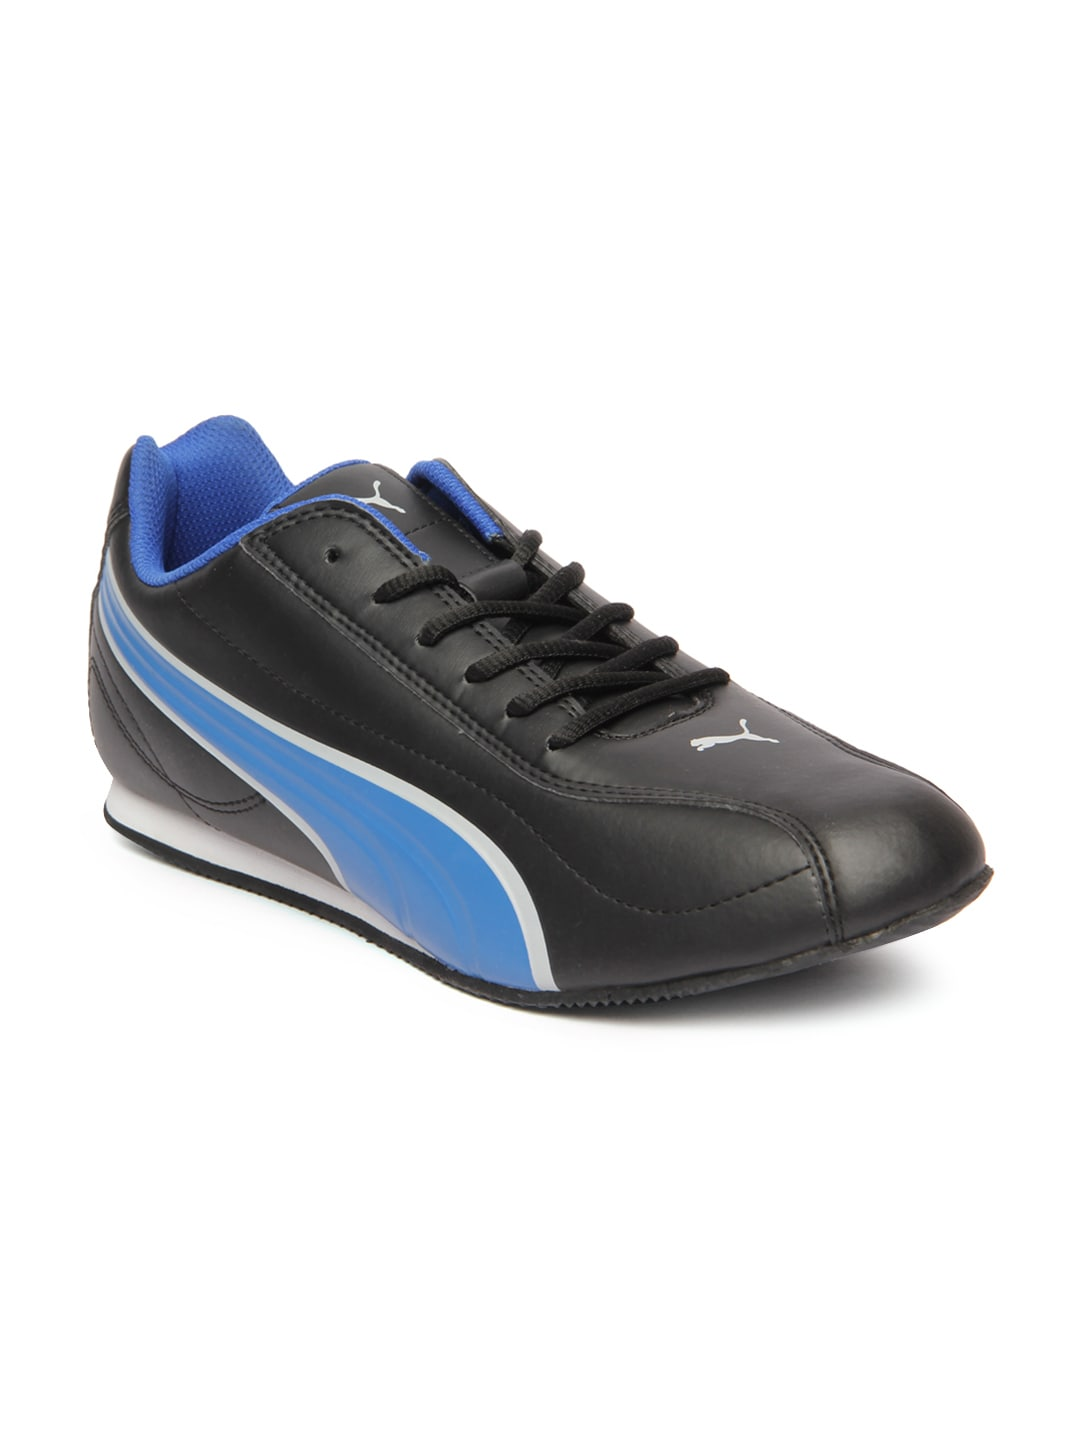 ede7a1a2556 Puma Shoe For Men Casual Shoes Apparel Set - Buy Puma Shoe For Men Casual  Shoes Apparel Set online in India